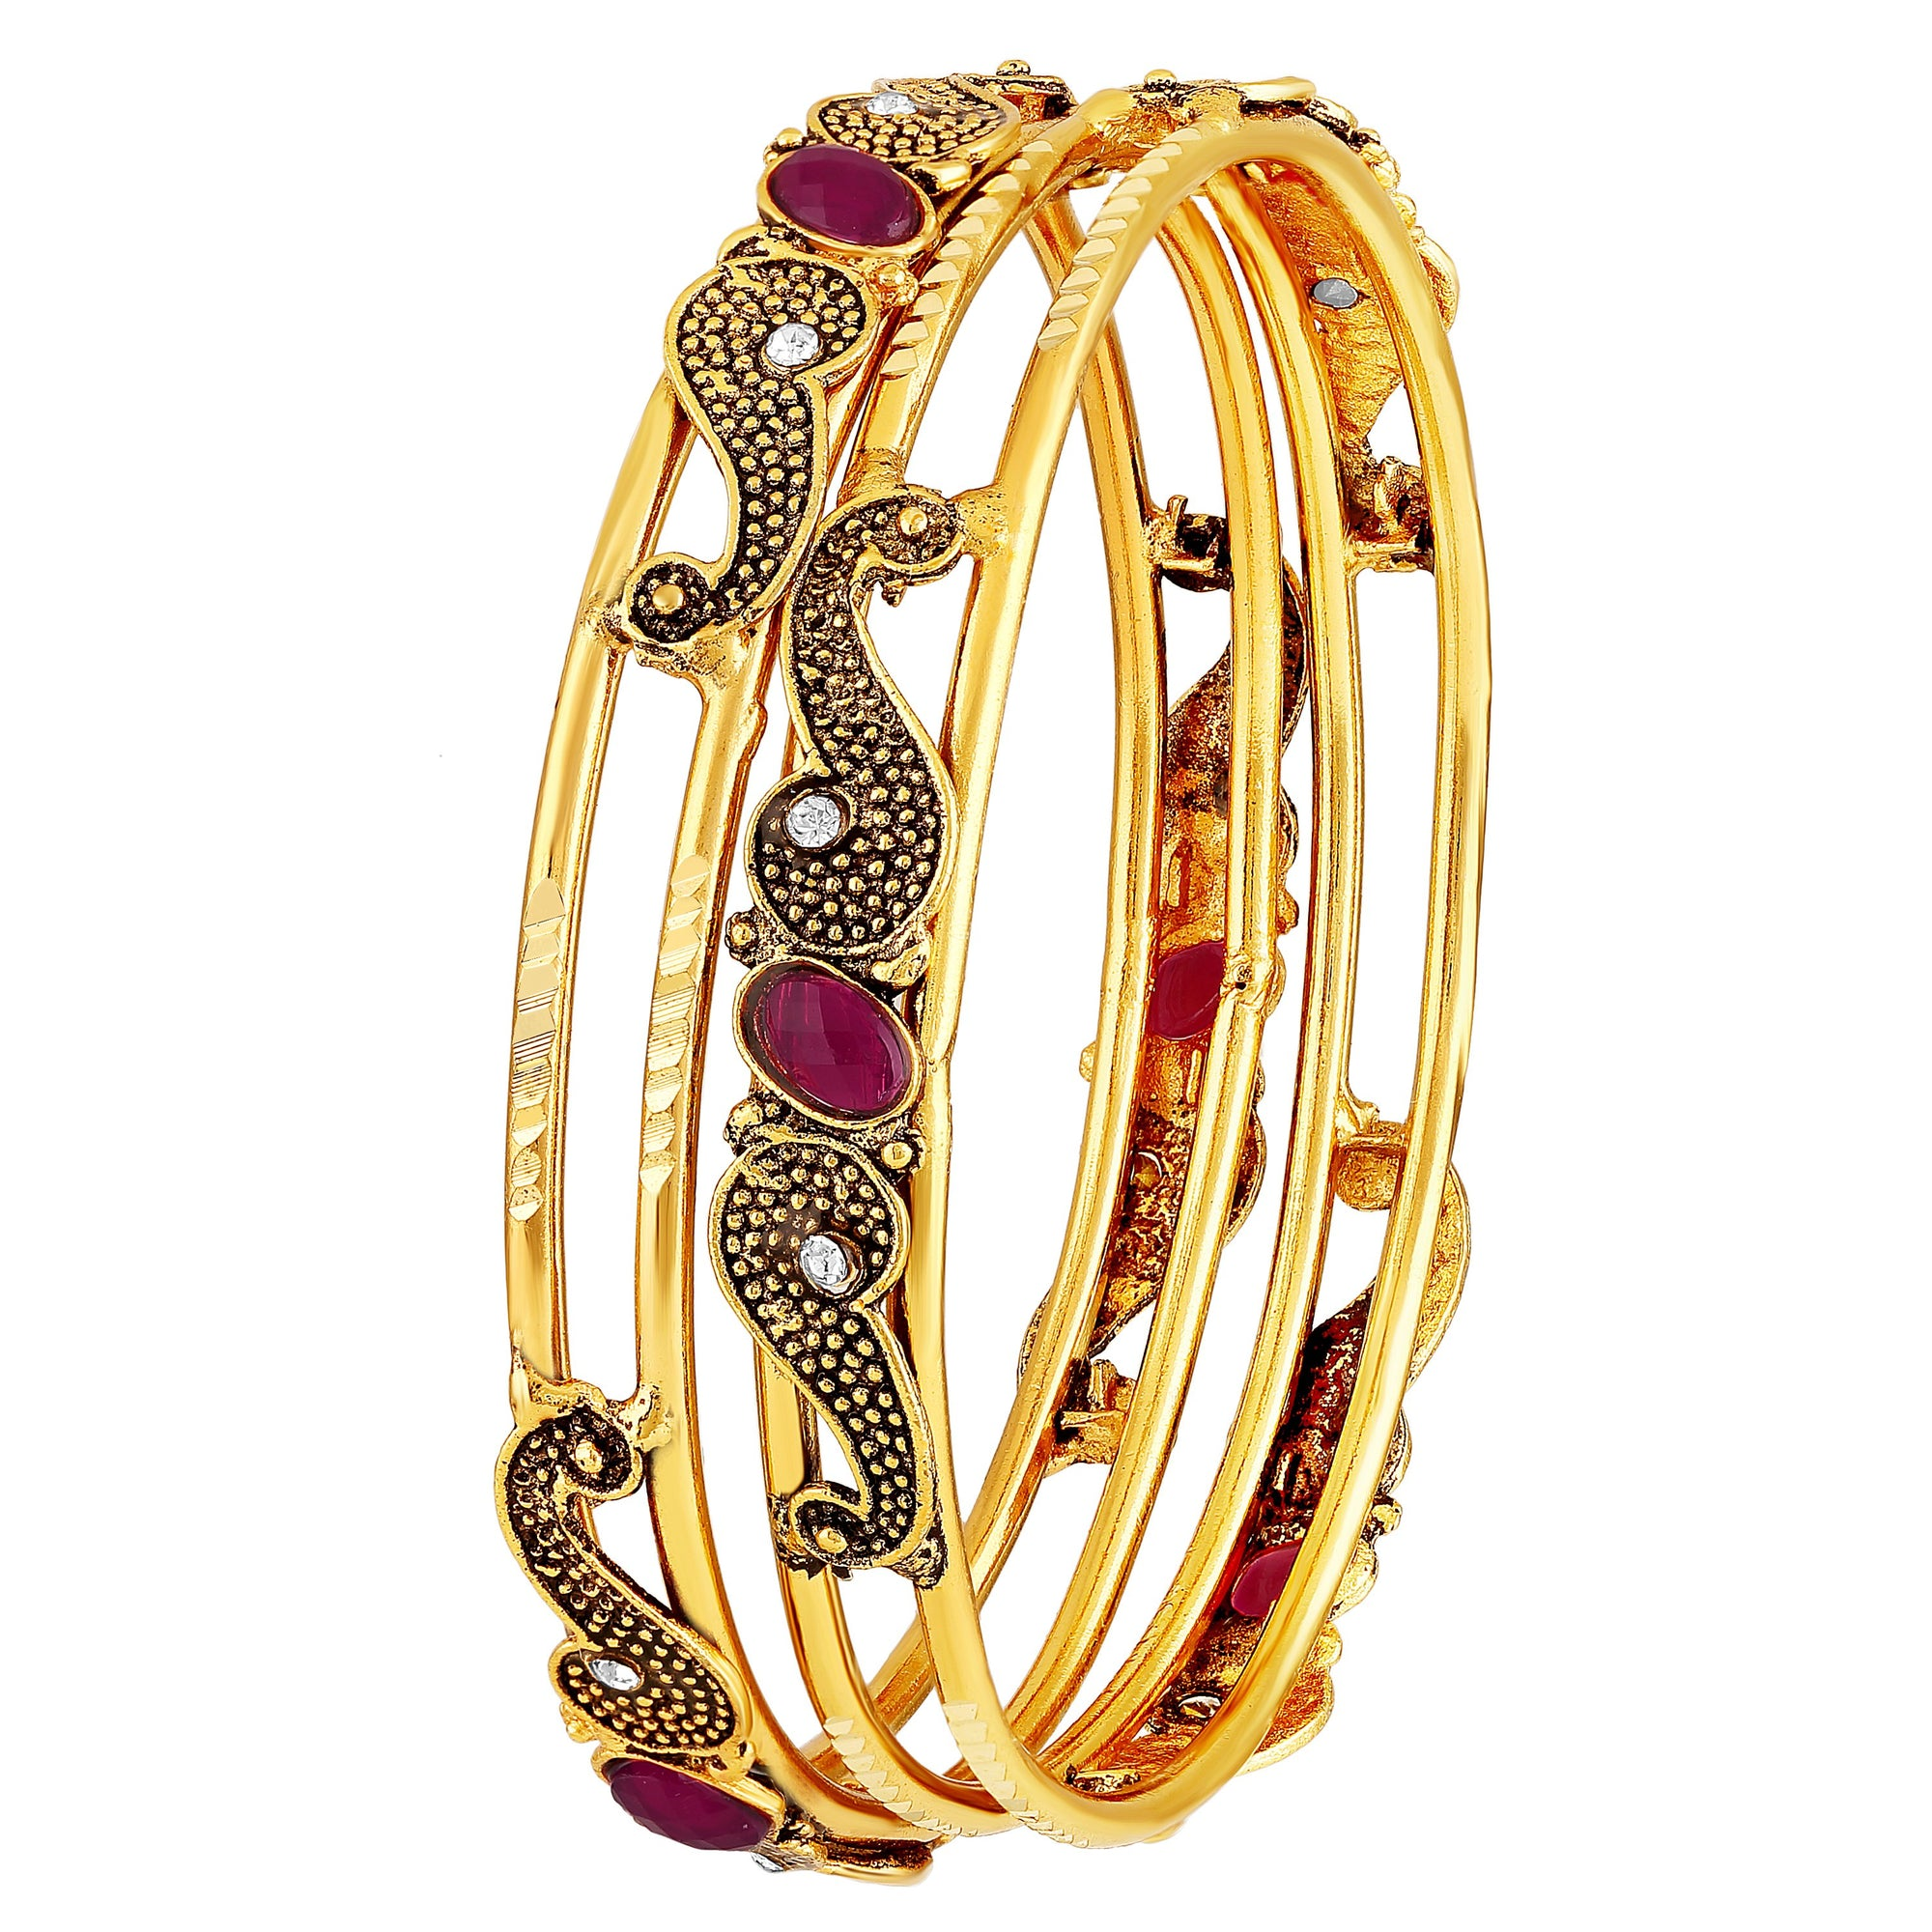 Asmitta Jewellery Oxidised Gold Set of 2 Bangle Set  -BG278